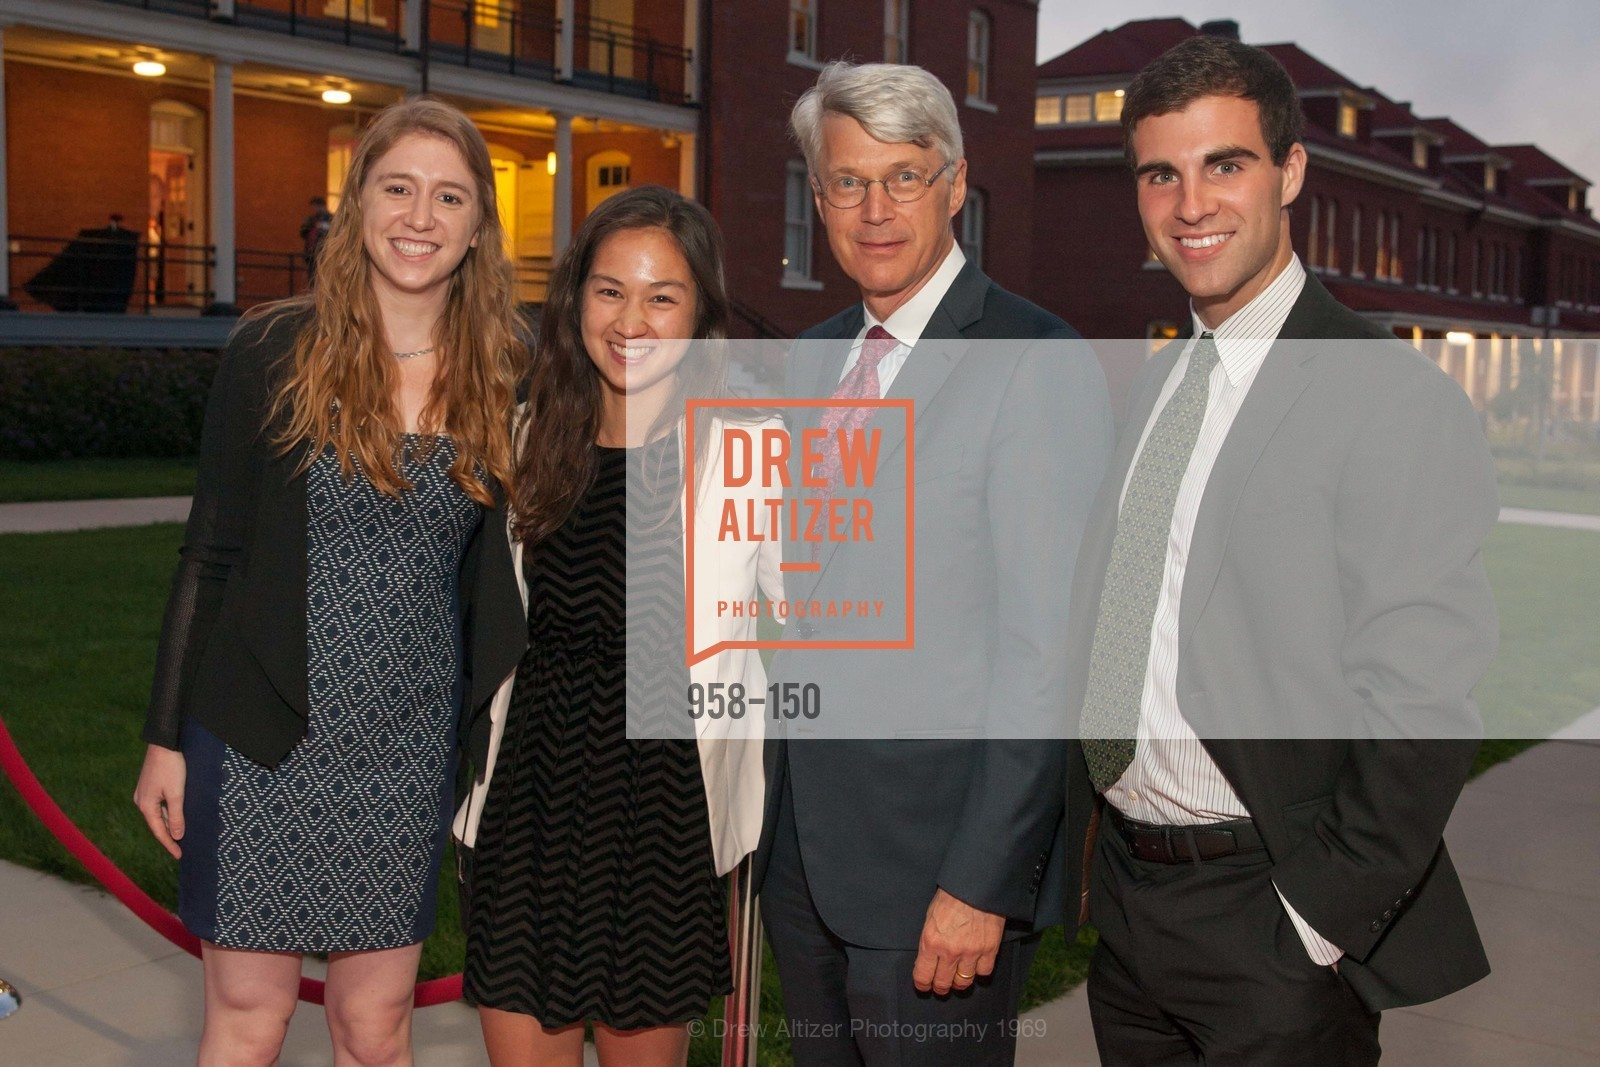 Taylor Grossman, Charlotte Sagan, Scott Sagan, Patrick Cirenza, Ploughshares Fund Presenting CHAIN REACTION 2015, The Open Square at Futures Without Violence. 100 Montgomery Street, June 7th, 2015,Drew Altizer, Drew Altizer Photography, full-service agency, private events, San Francisco photographer, photographer california